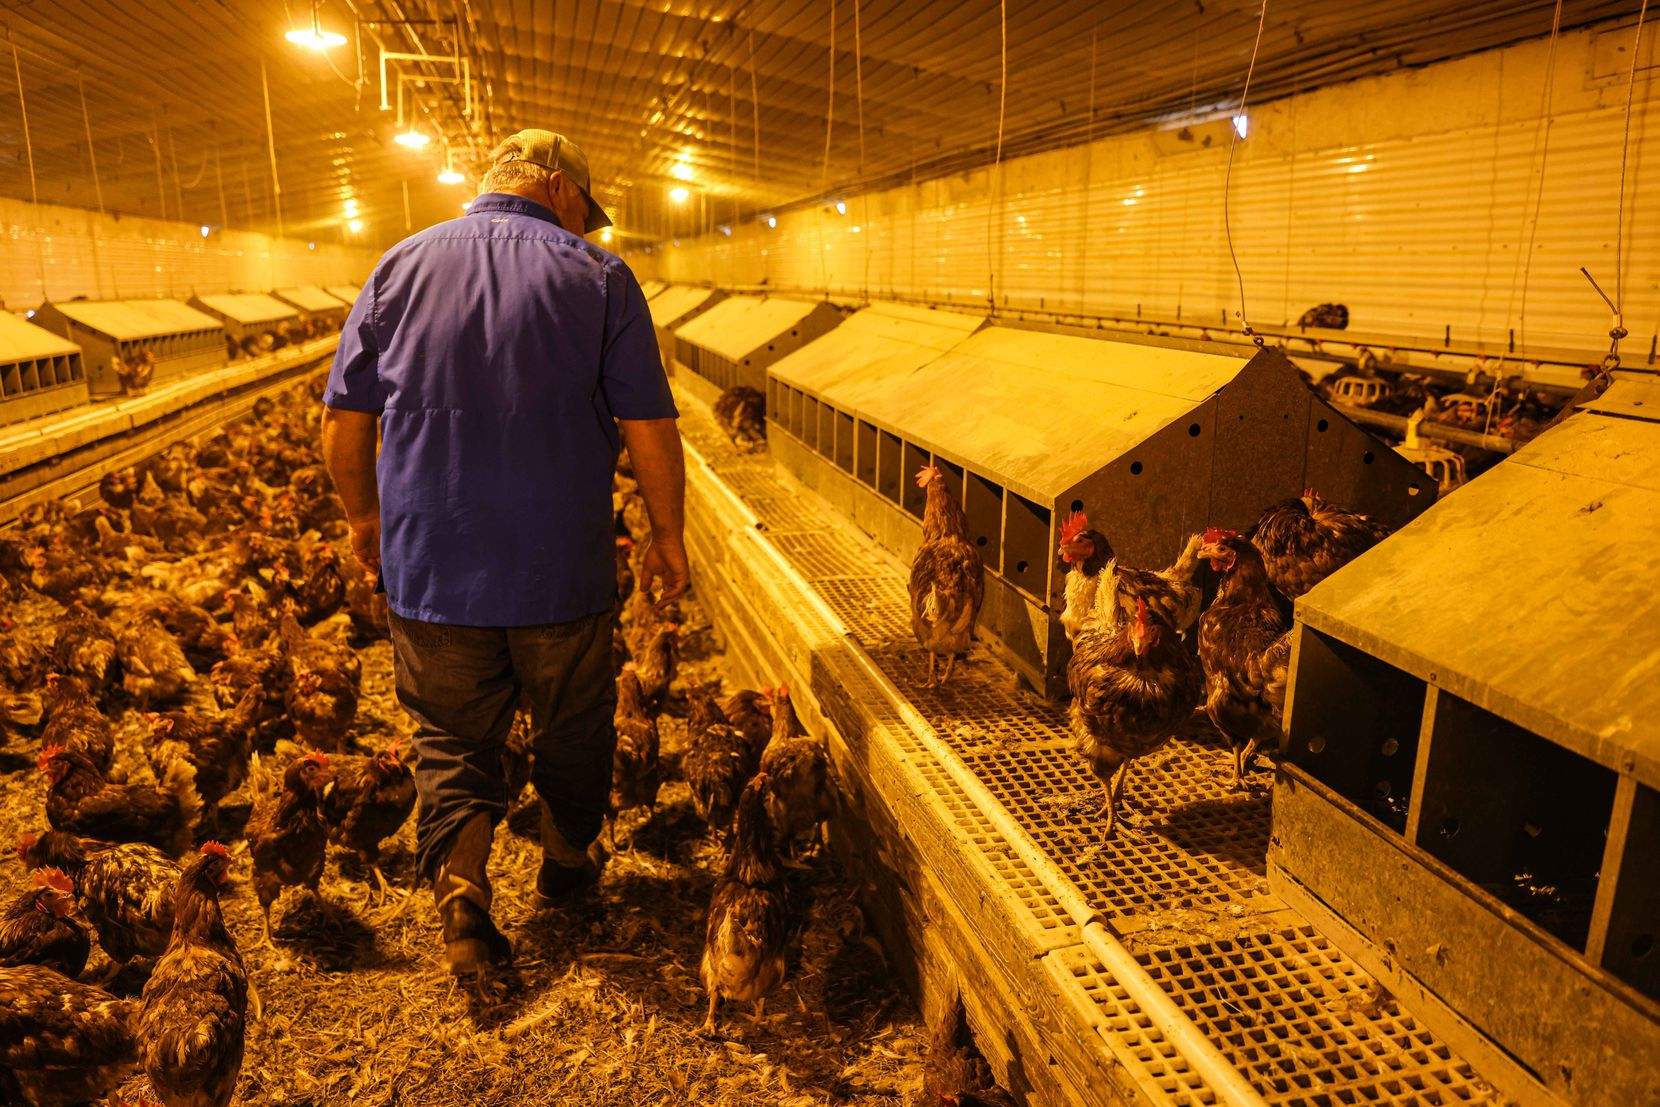 Sam Miller walks around the barn at Cedar Ridge Egg Farm. Miller lost around 1,000 hens during the winter storm that hit Texas in mid-February, and many of the remaining hens stopped laying eggs.